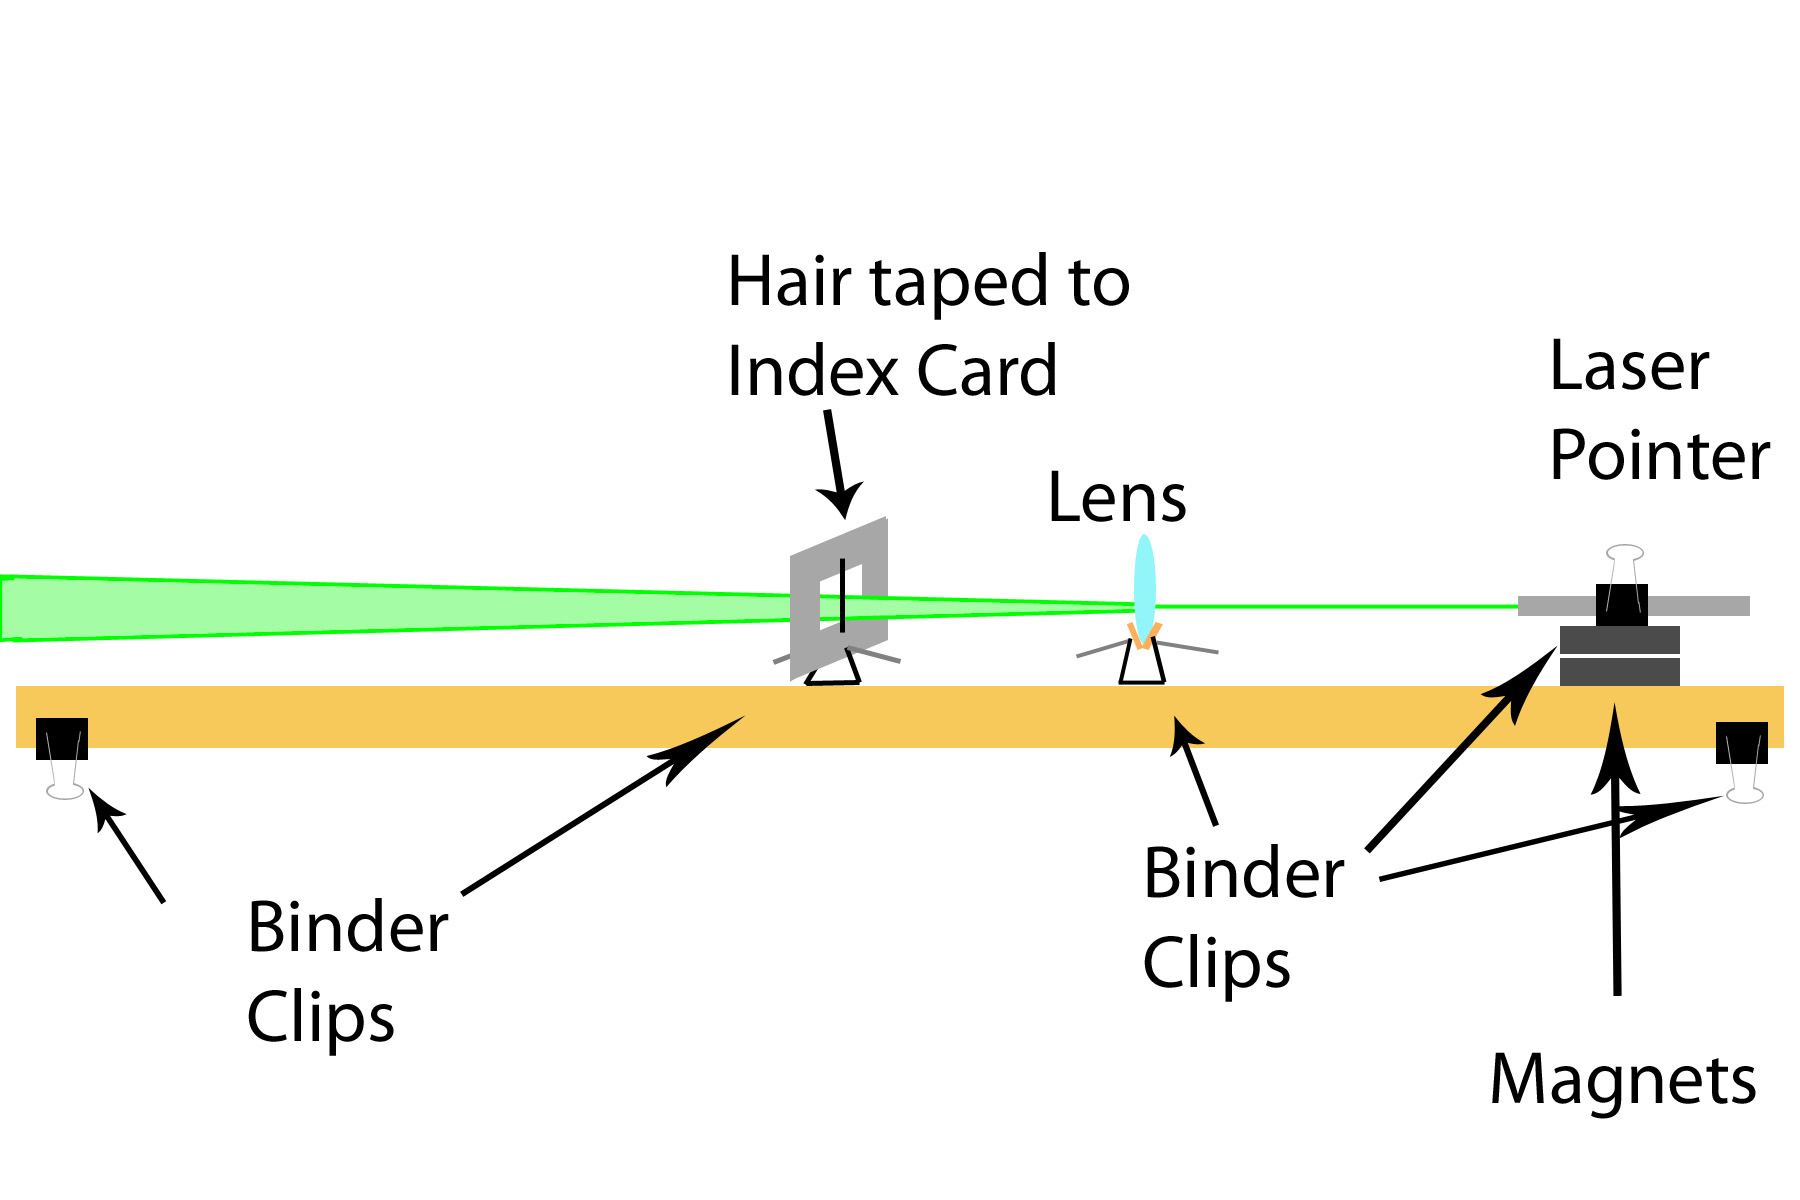 light wave diffraction diagram embraco relay wiring with hair or wire